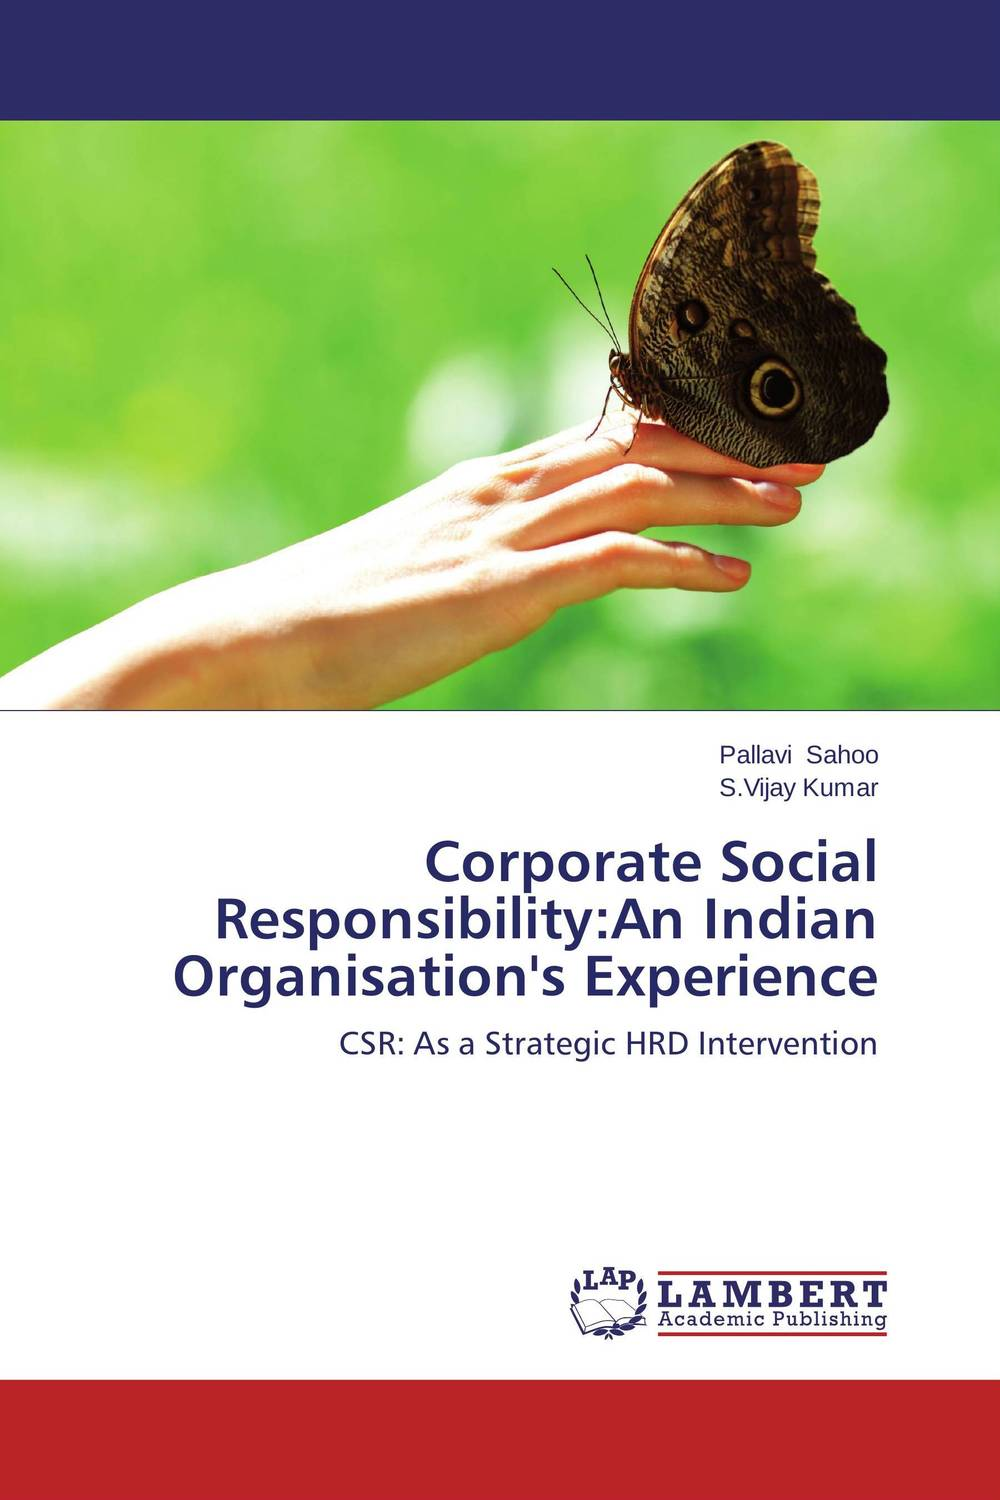 Corporate Social Responsibility:An Indian Organisation's Experience charlene li the seven success factors of social business strategy